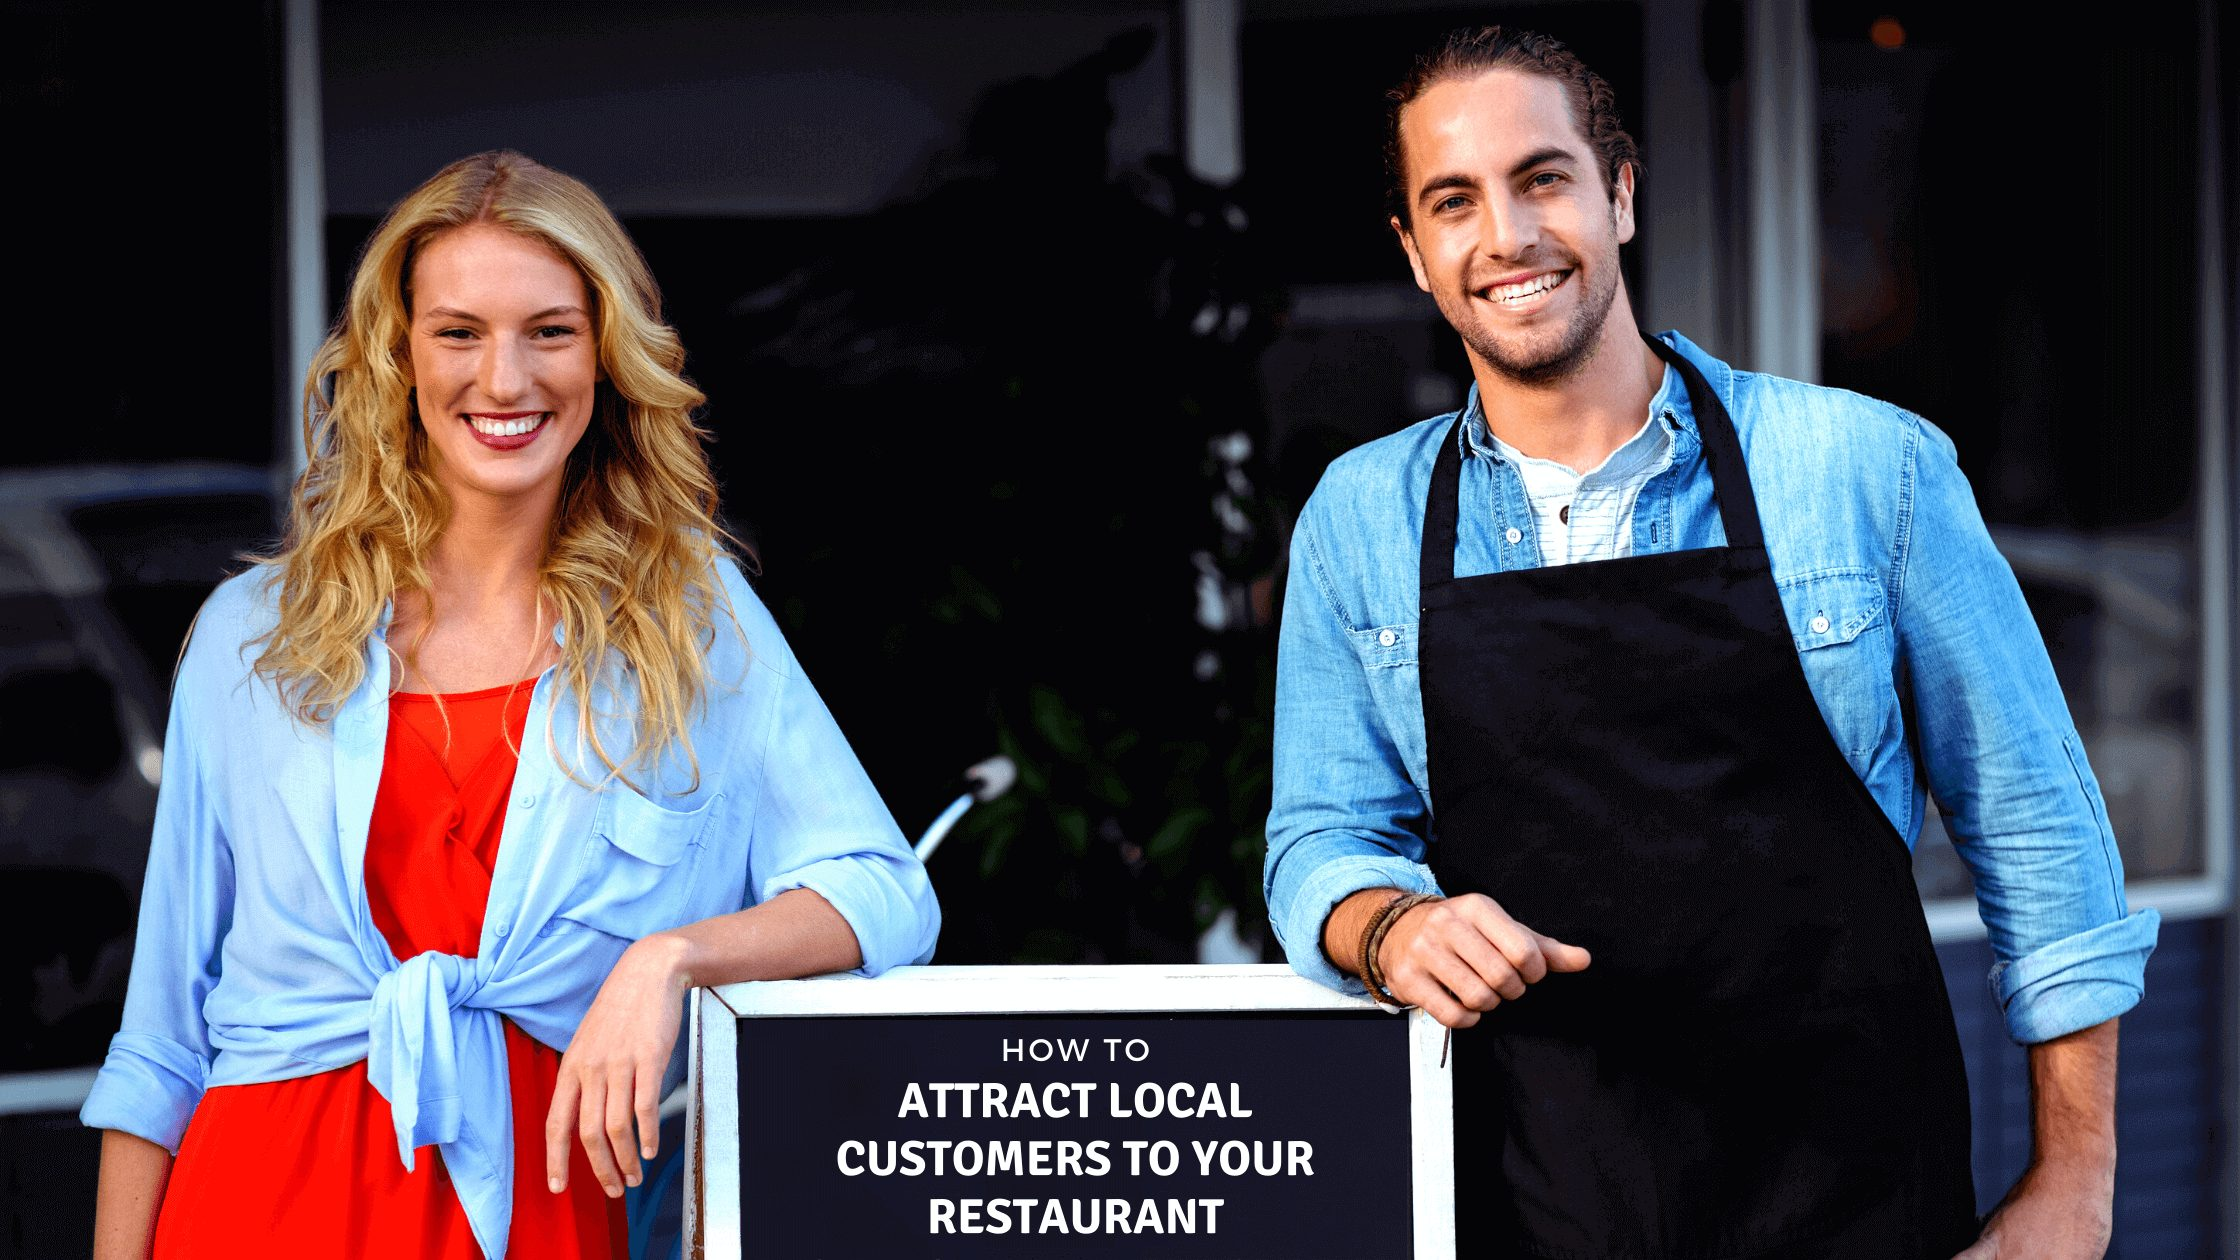 How to attract local customers to your restaurant